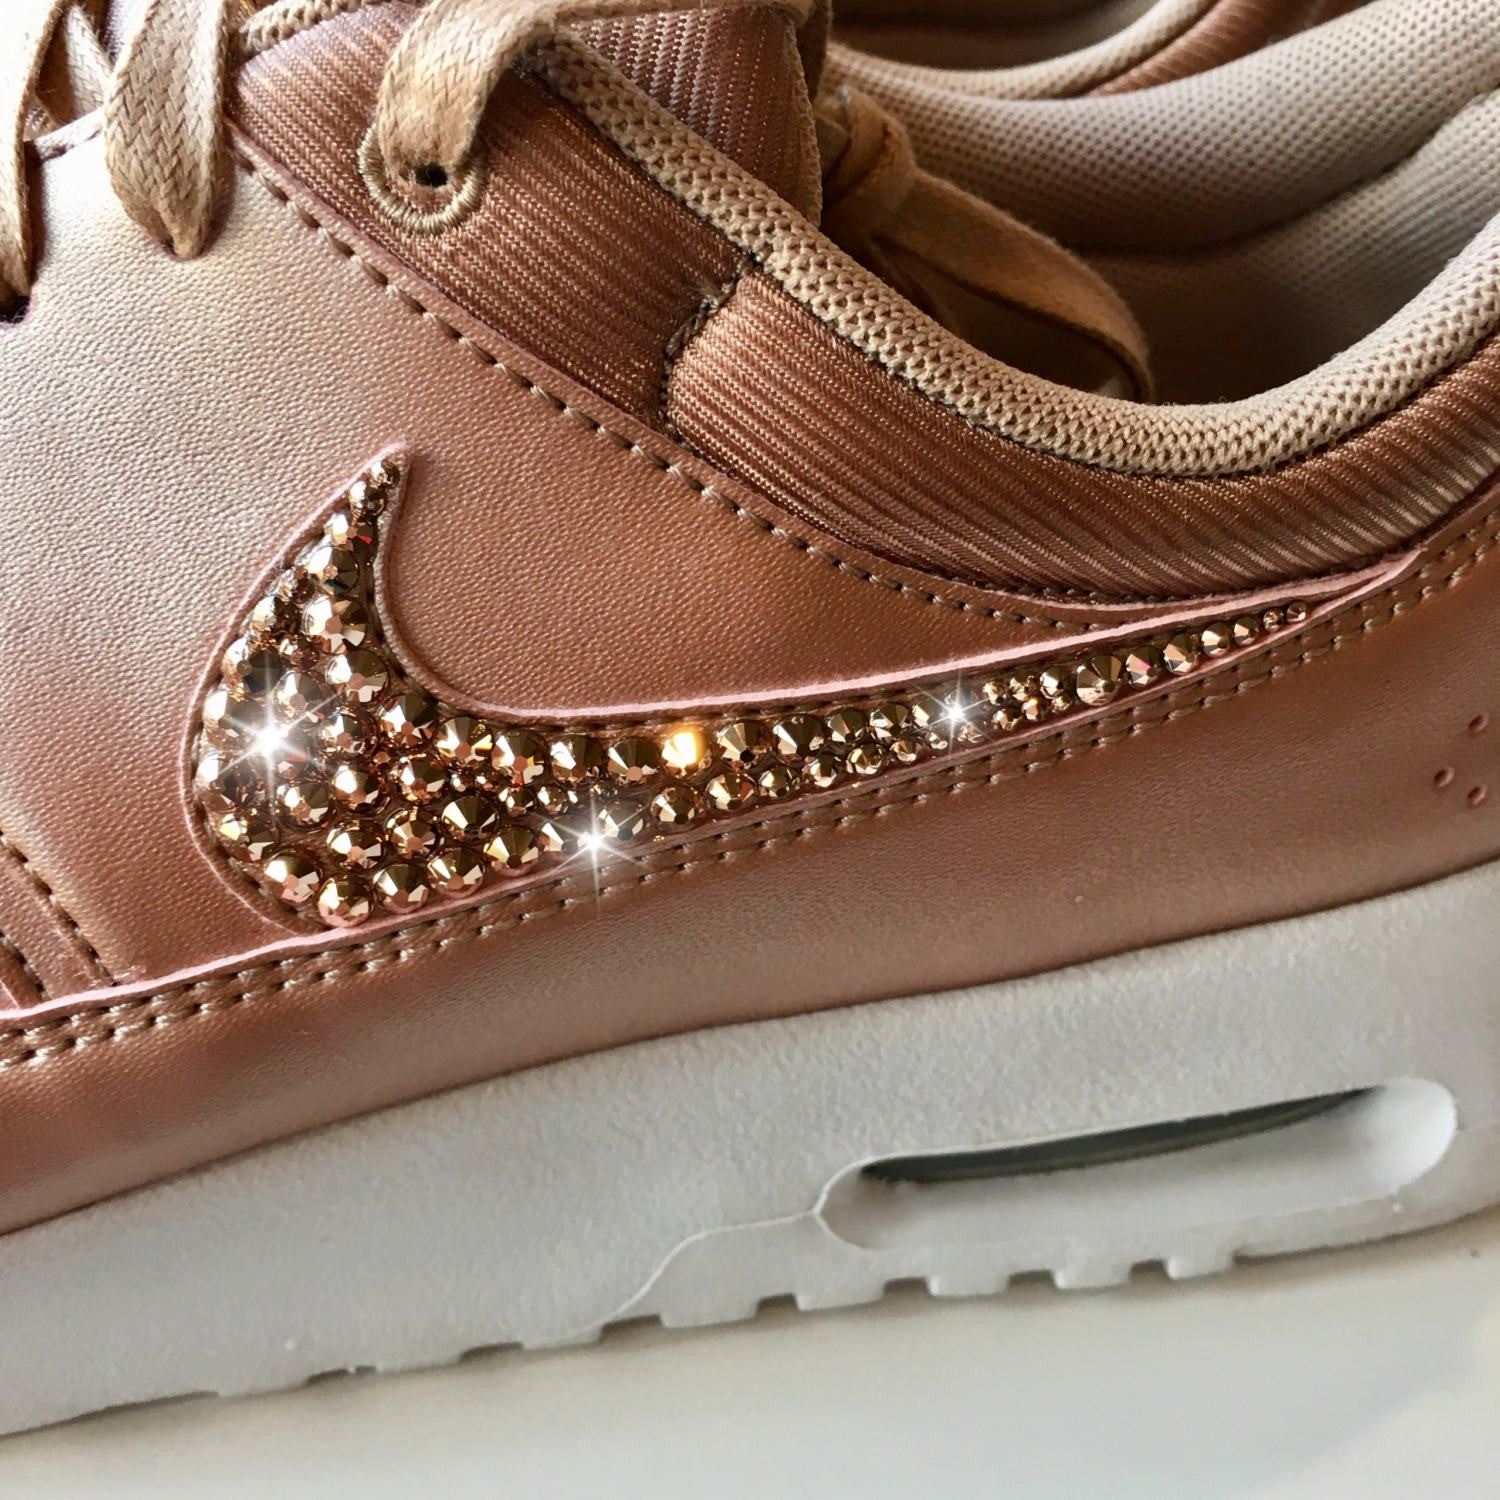 e09e51ae81 ... ROSE GOLD Bling Nike Air Max Thea Metallic SE Shoes with Swarovski  Crystals * Bedazzled with ...